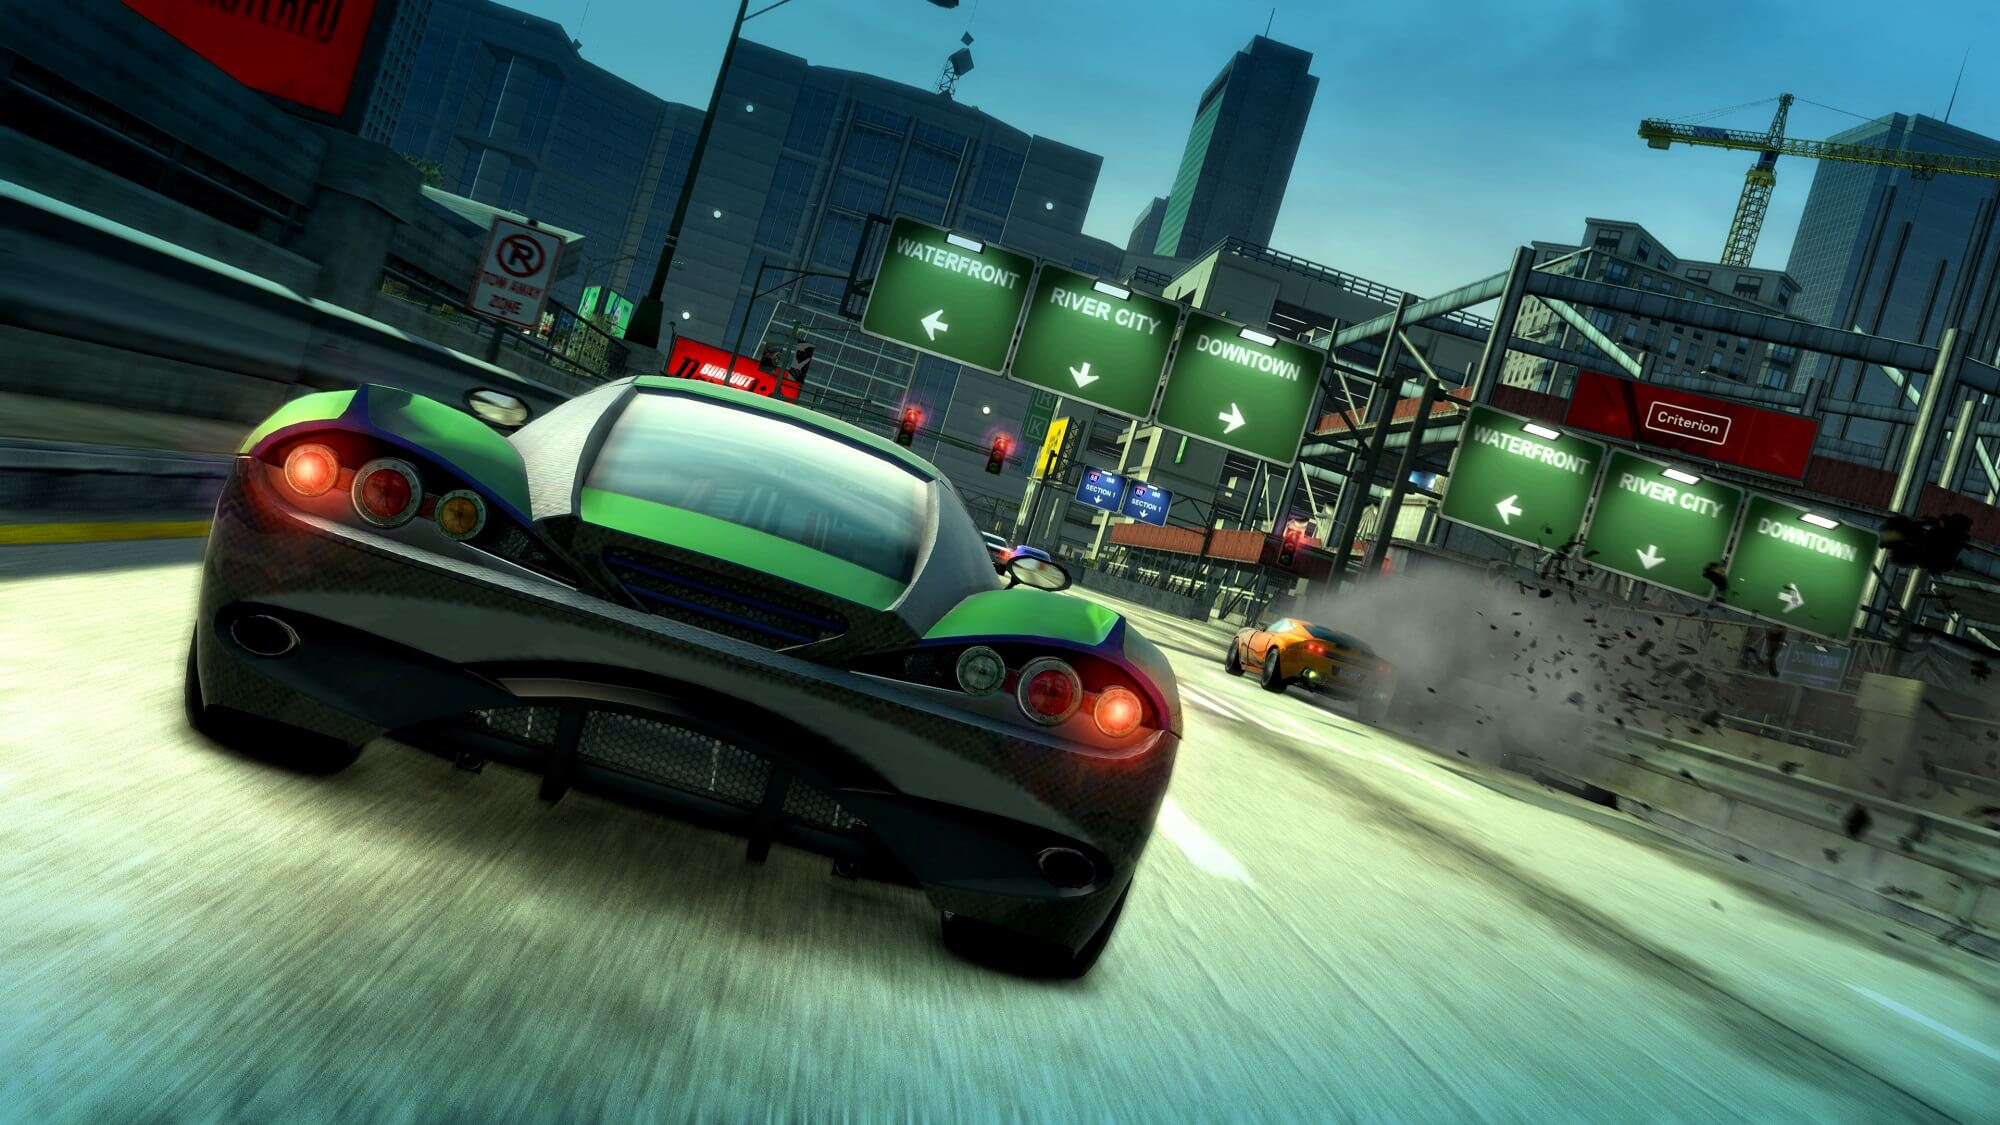 Burnout Paradise Remastered is out on June 19, according to the Switch eShop screenshot